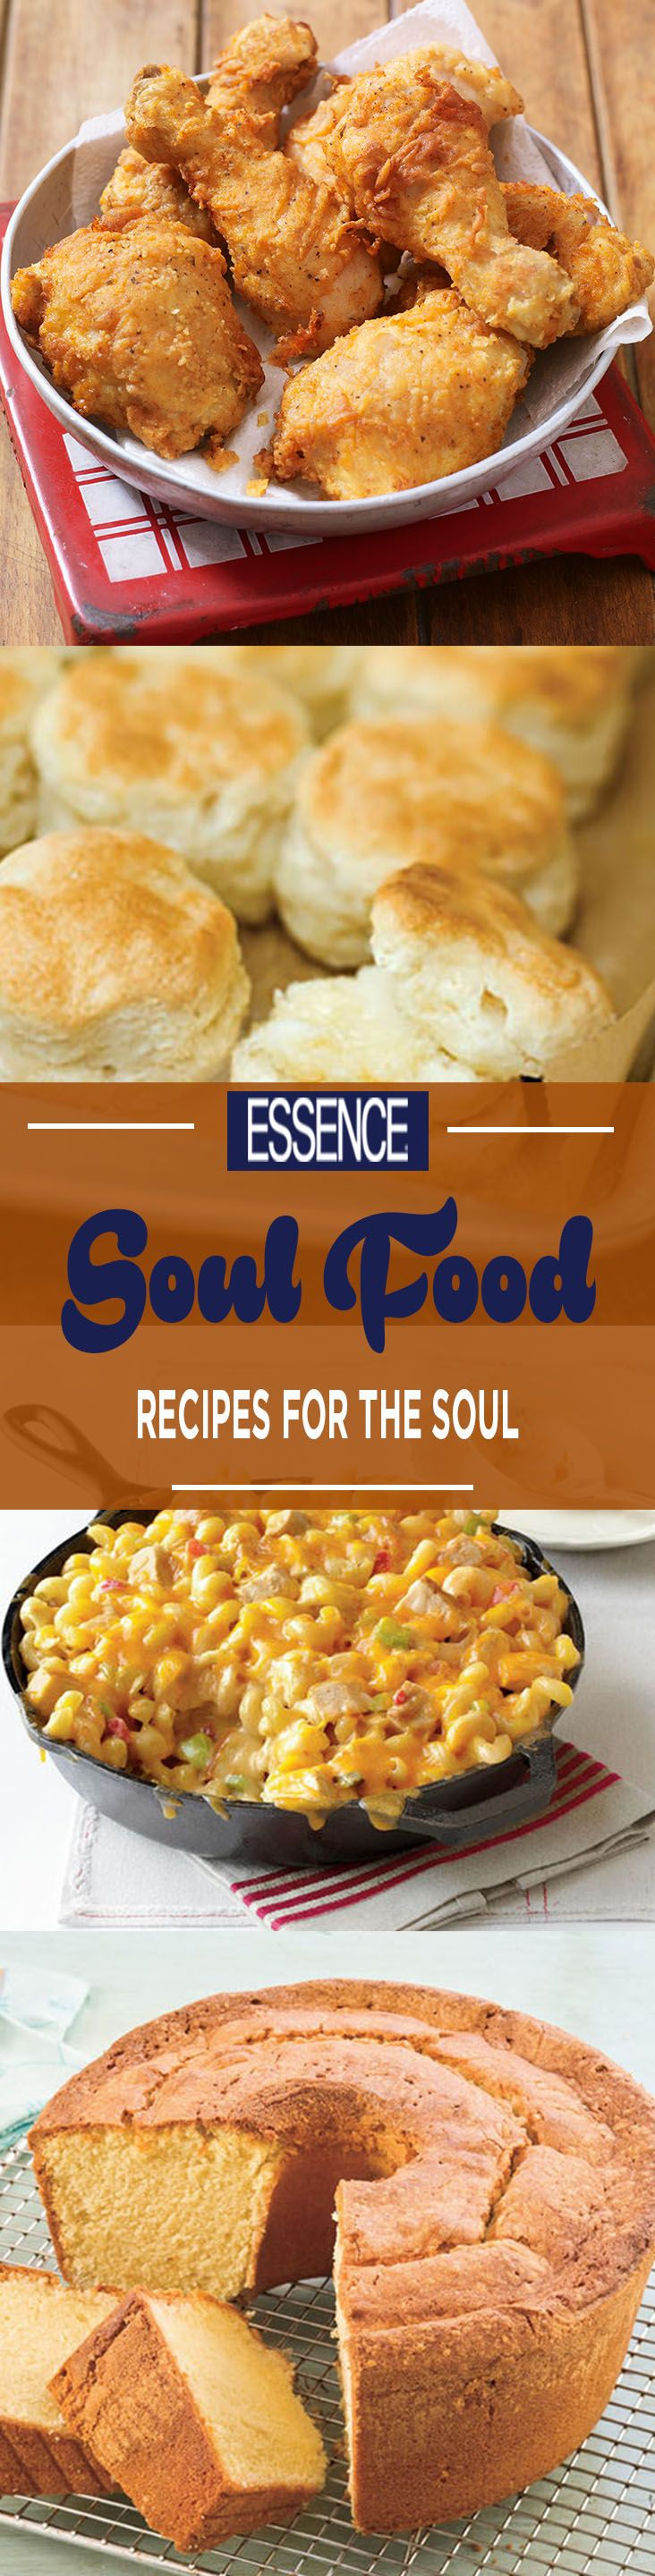 14 amazing soul food recipes to master soul food soul food 14 amazing soul food recipes to master forumfinder Image collections